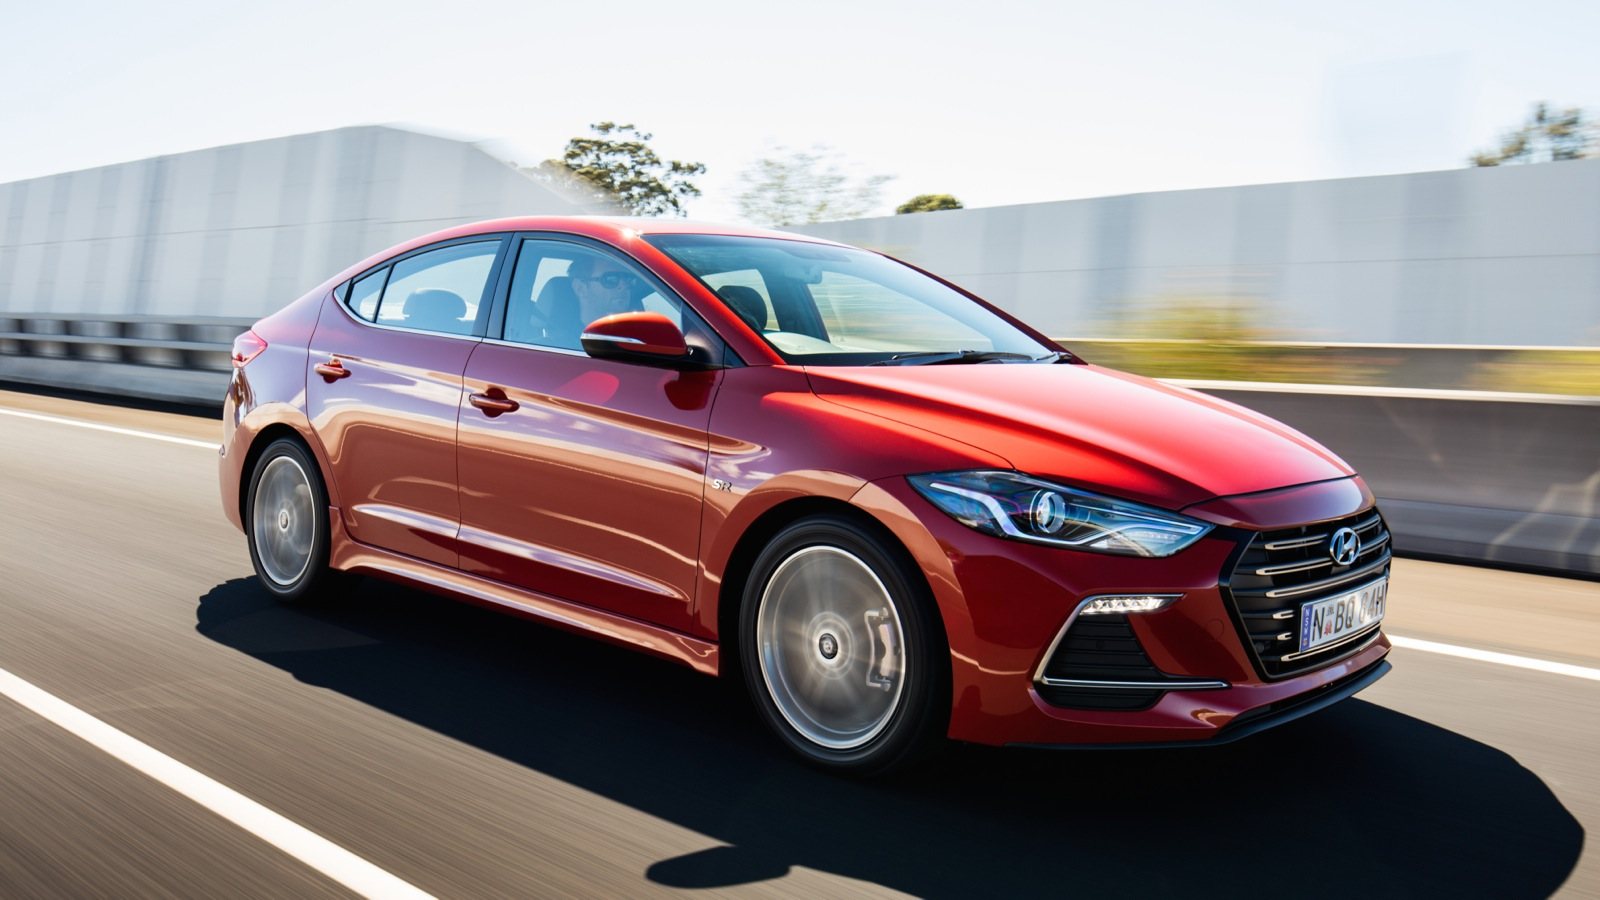 Simple 2017 Hyundai Elantra SR Turbo Review  CarAdvice